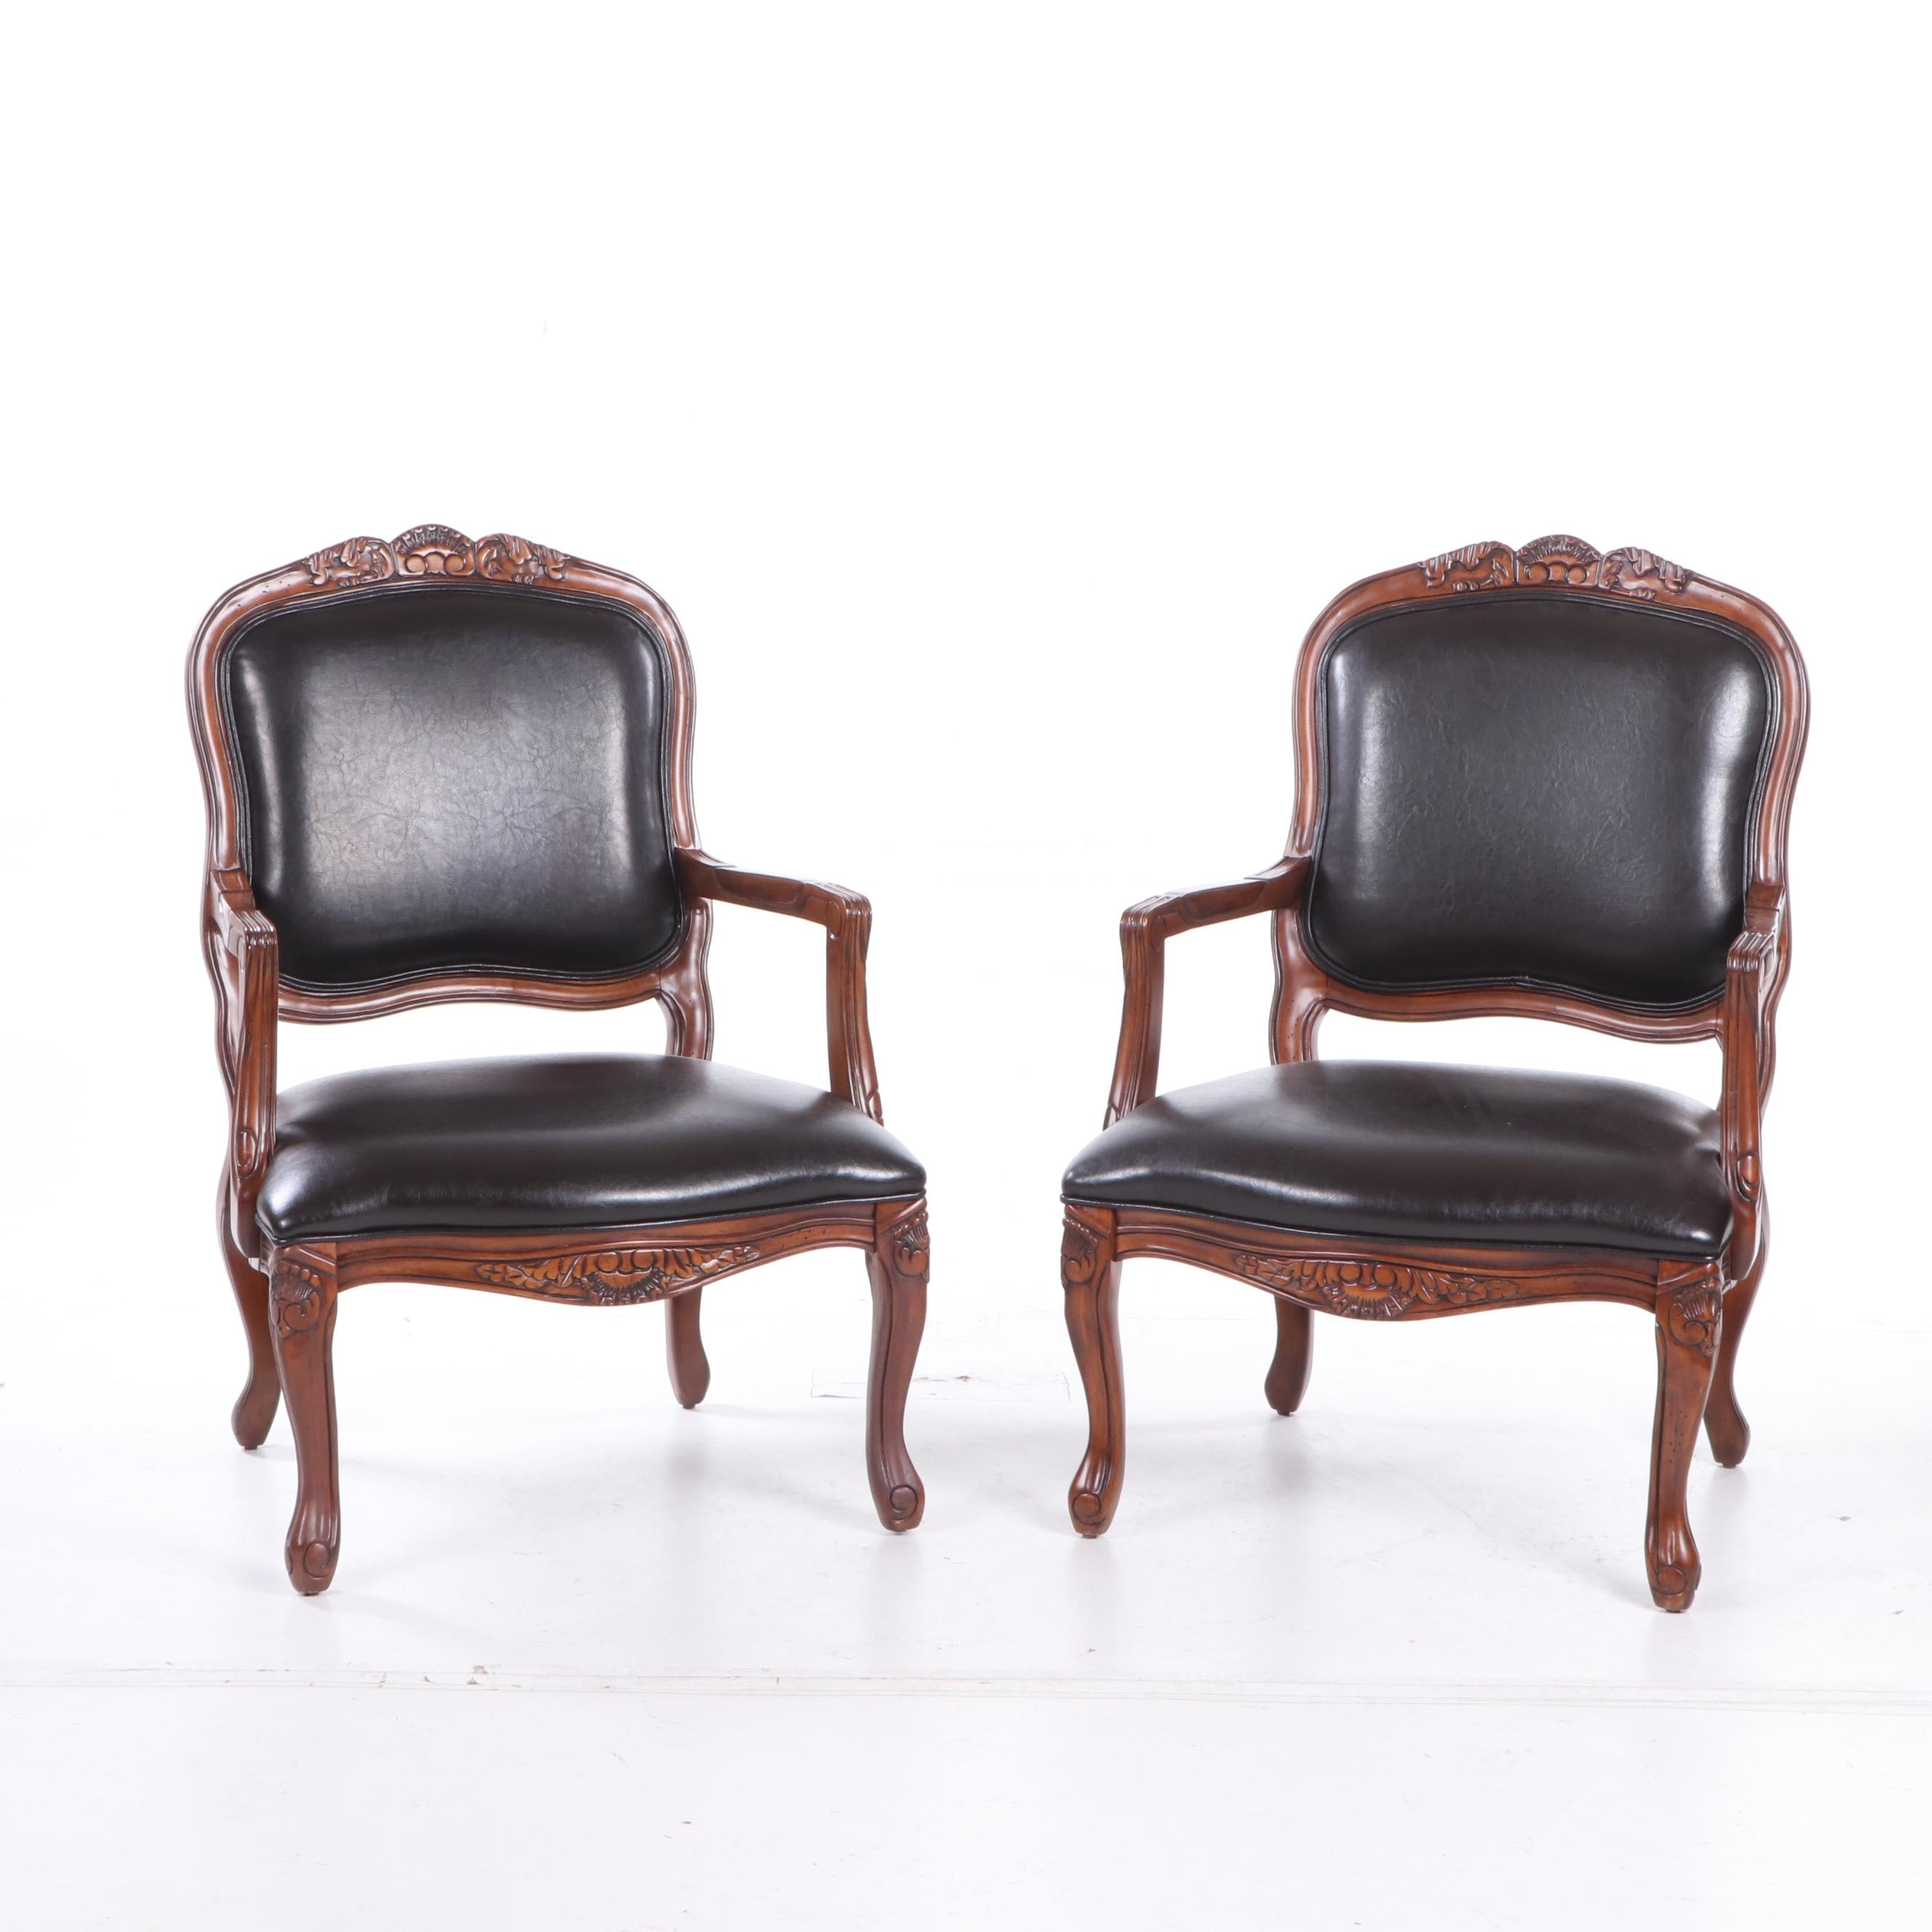 Louis XV Style Upholstered Armchairs, Contemporary